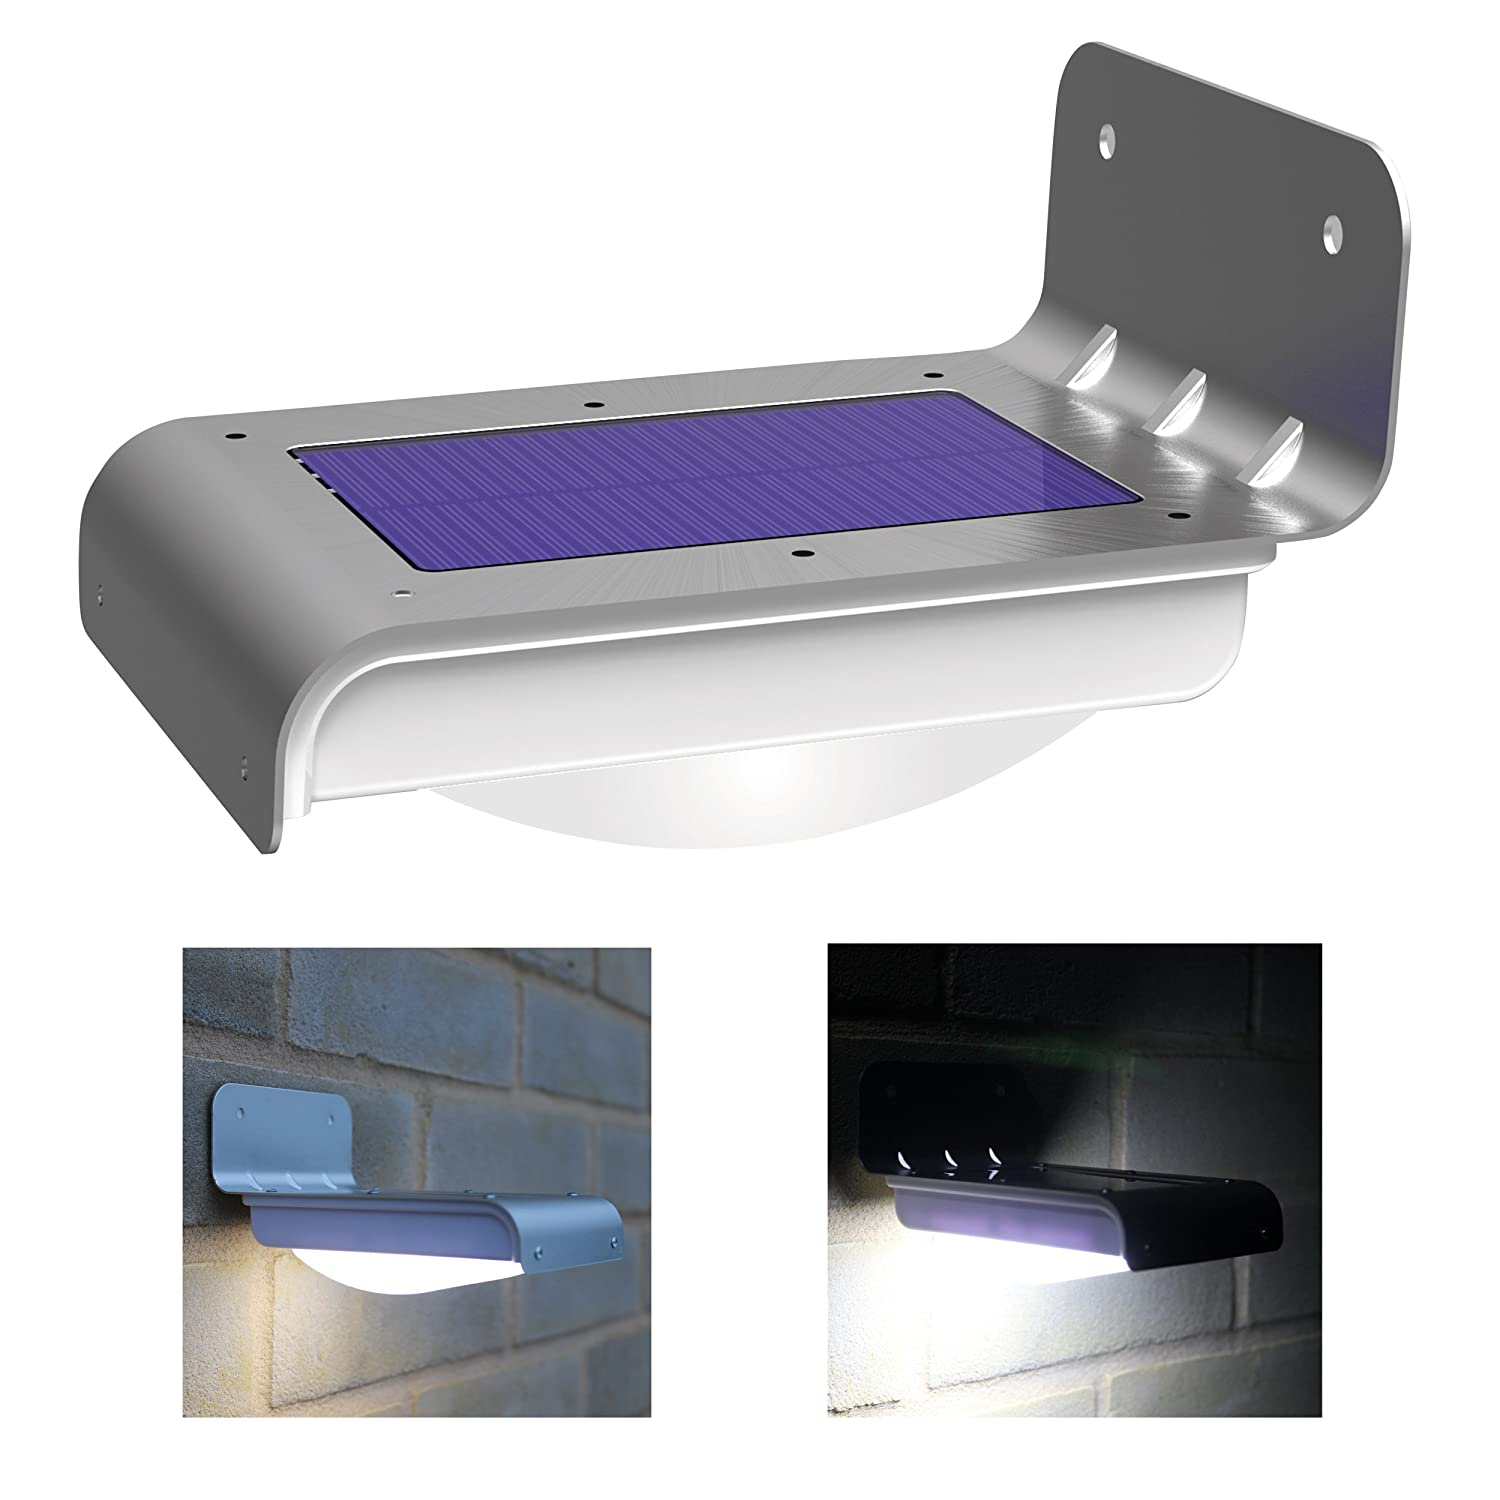 Frostfire 16 Bright LED Wireless Solar Powered Motion Sensor Light (Weatherproof, no batteries required) $19.95